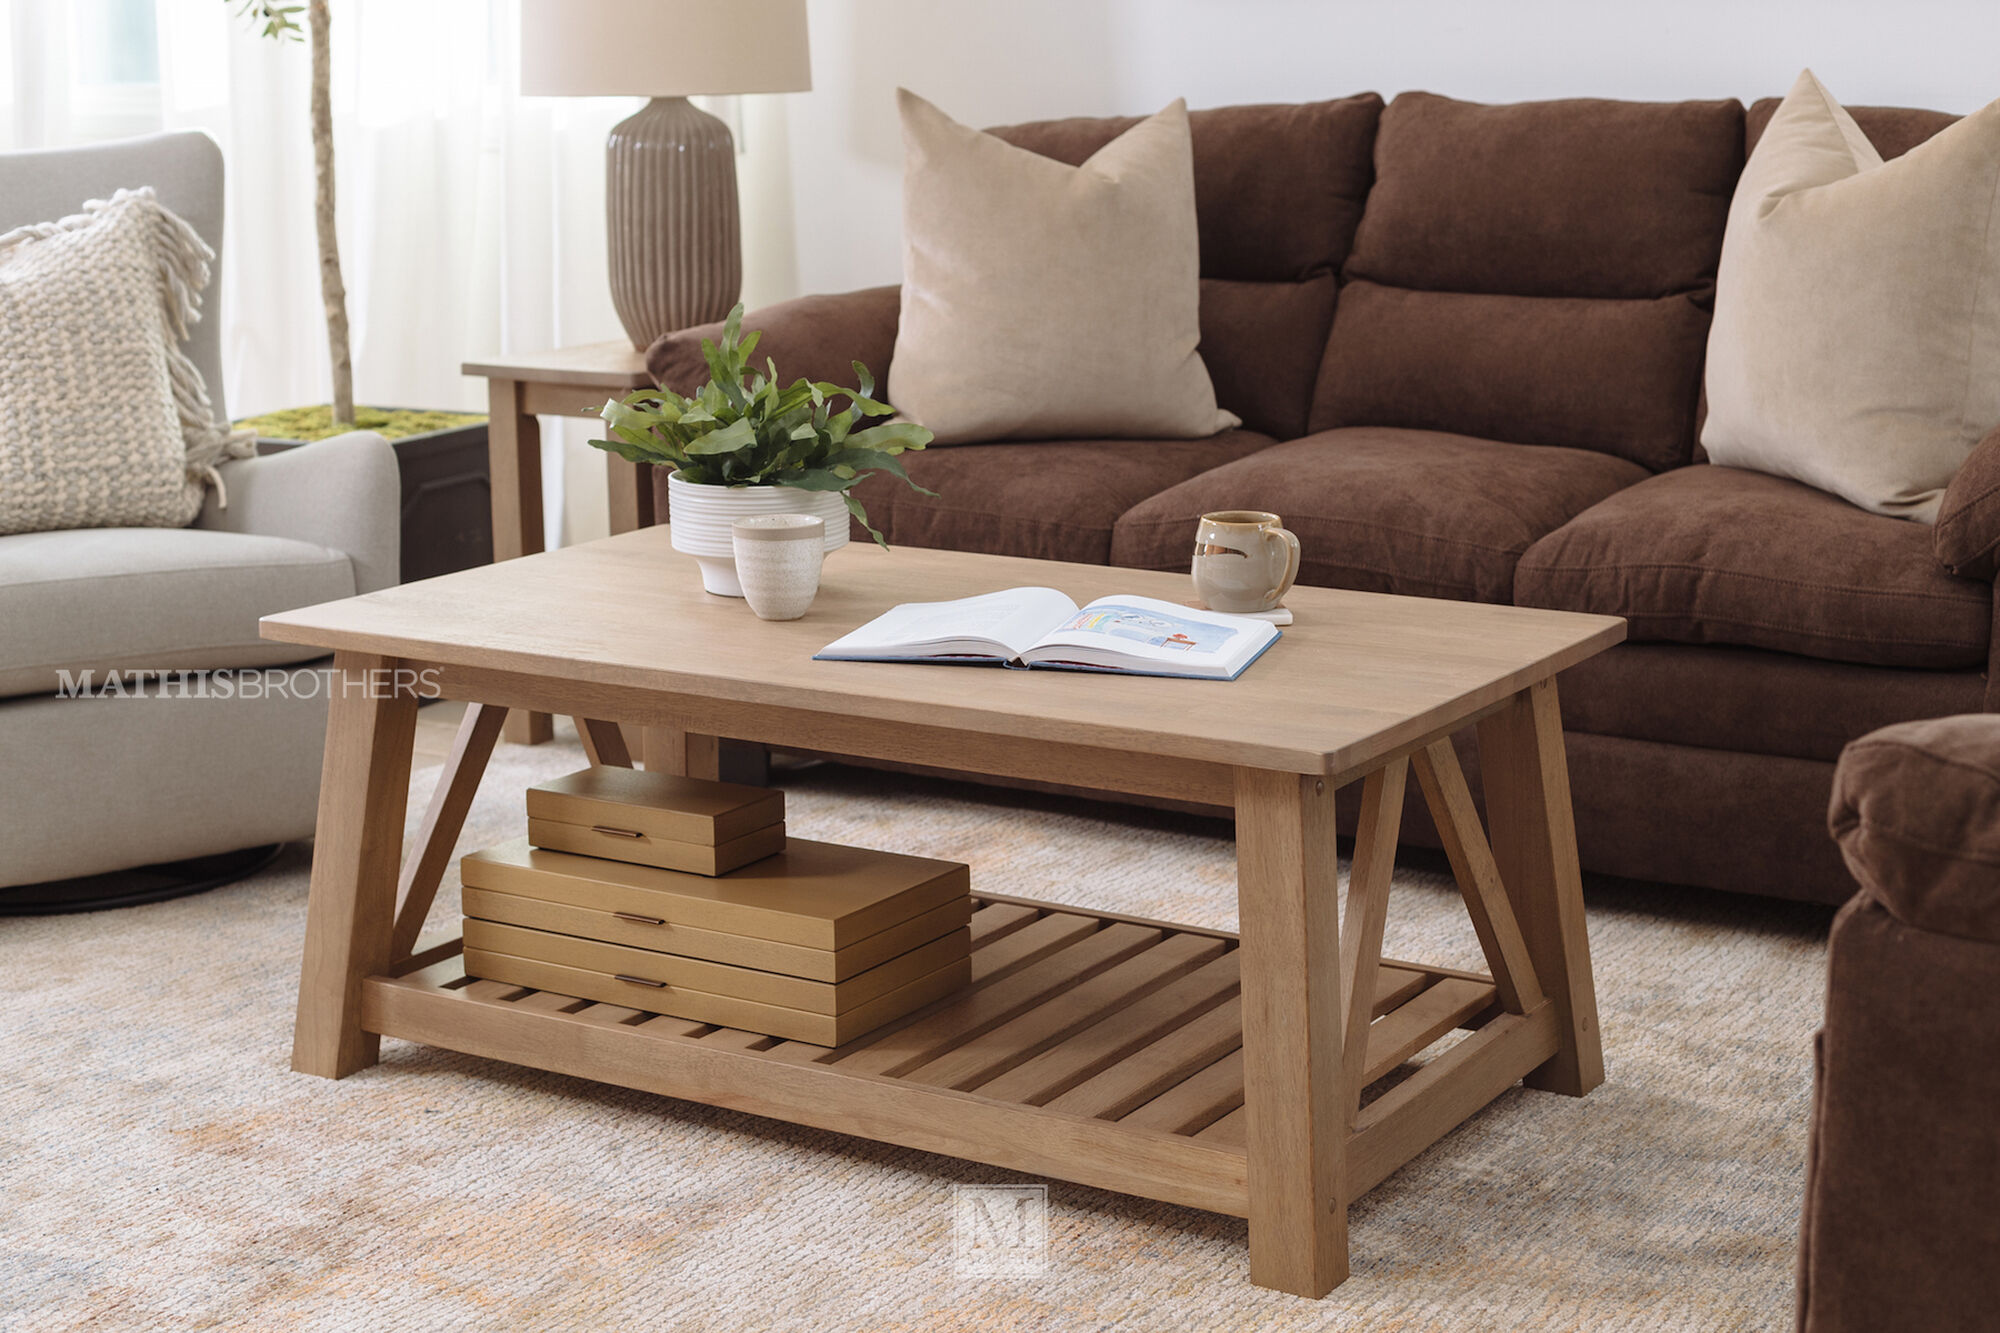 Transitional Coffee Table In Brown Mathis Brothers Furniture